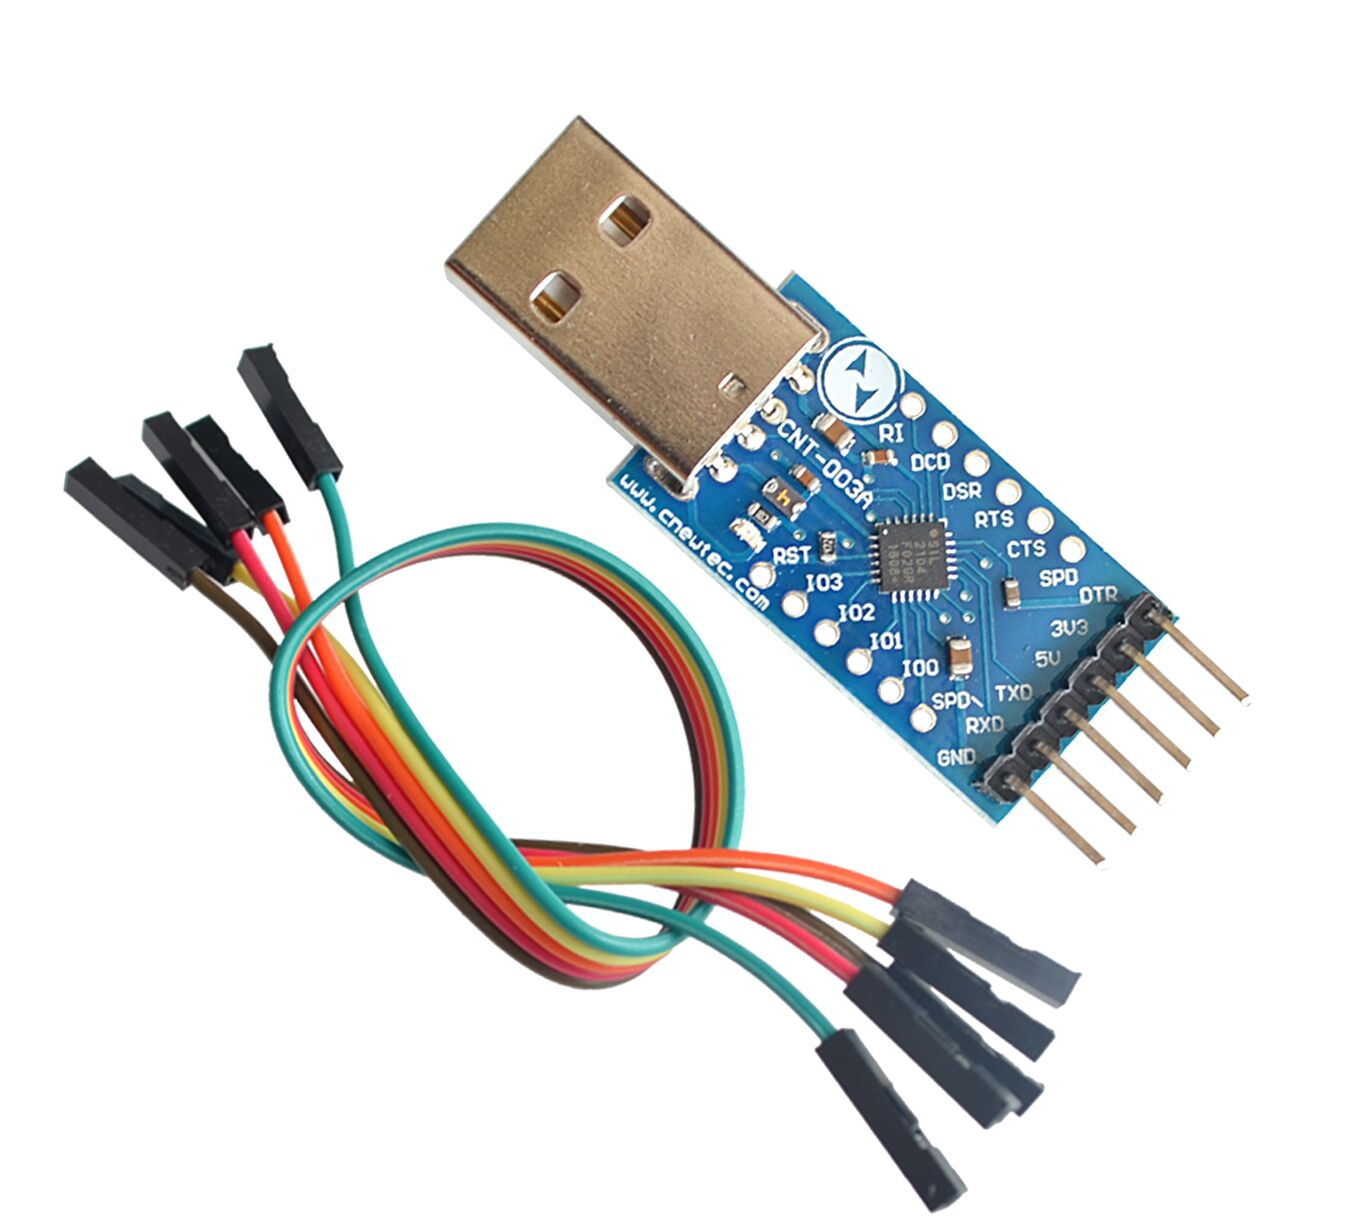 USB Cables//IEEE 1394 Cables USB to UART cable 2mm pitch 3.3V TTL Pack of 2 TTL-234X-3V3-2mm